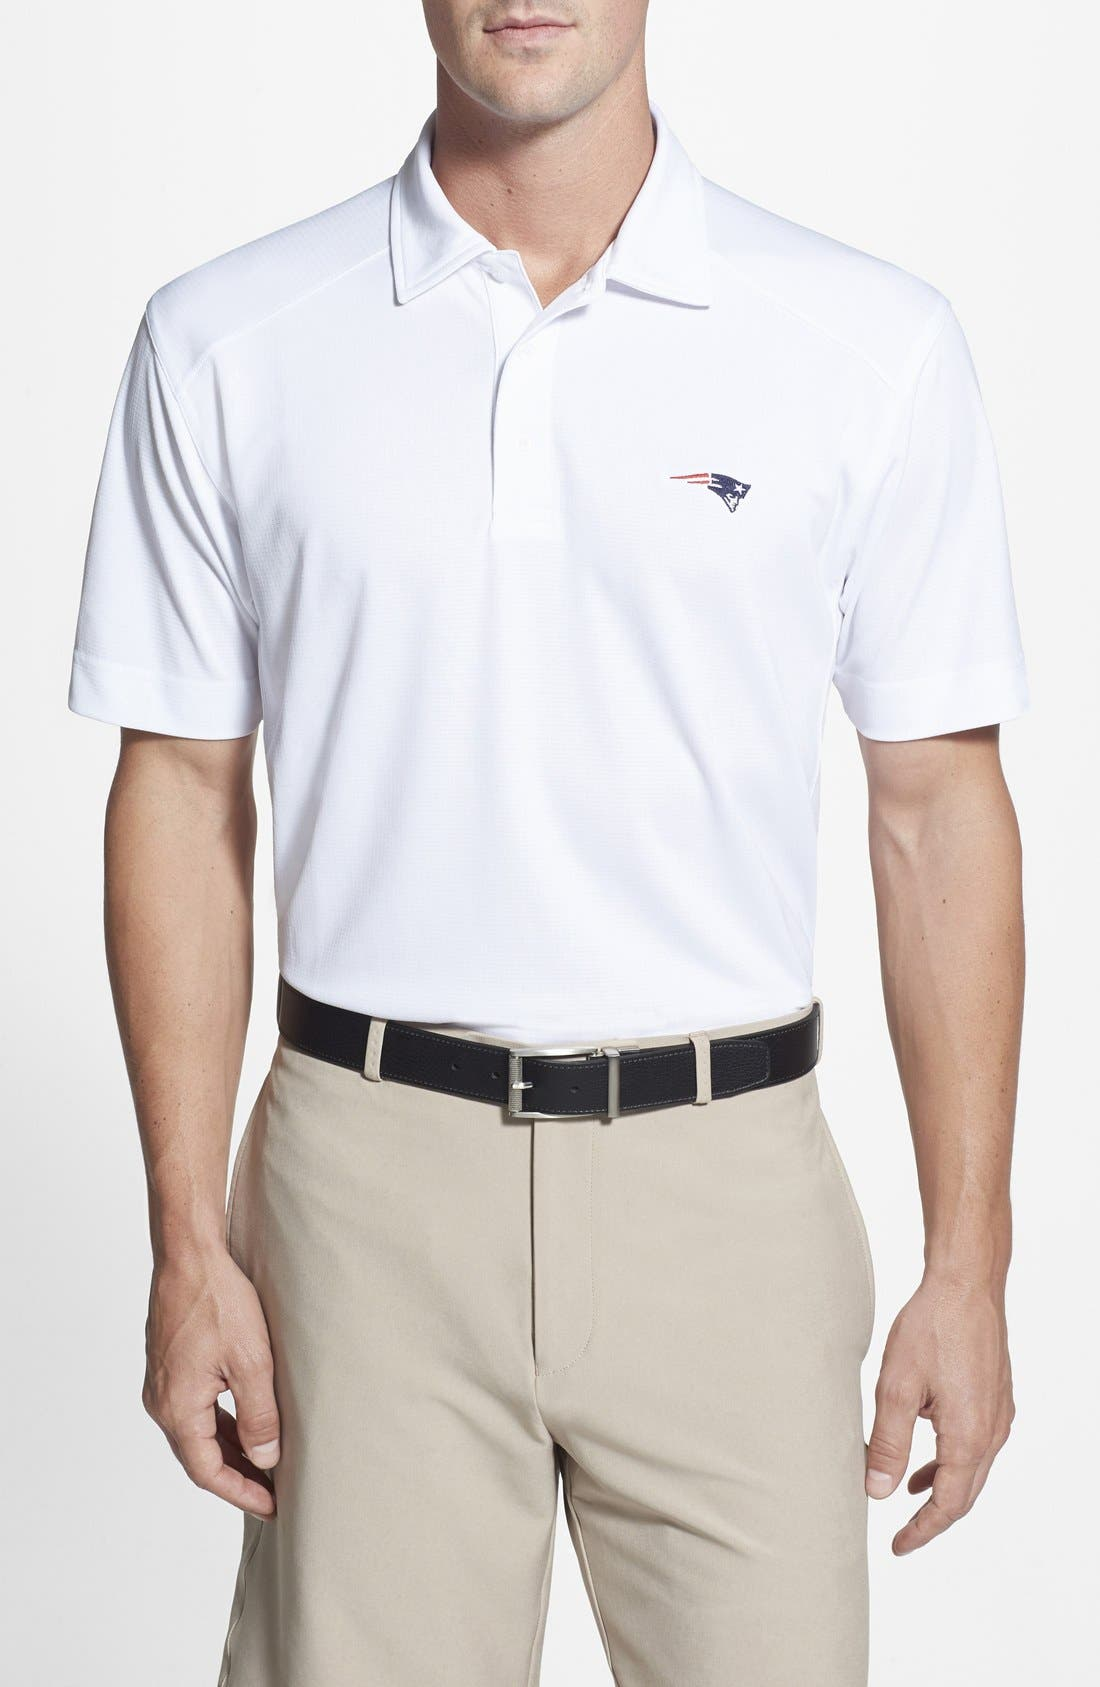 New England Patriots - Genre DryTec Moisture Wicking Polo,                         Main,                         color, 100